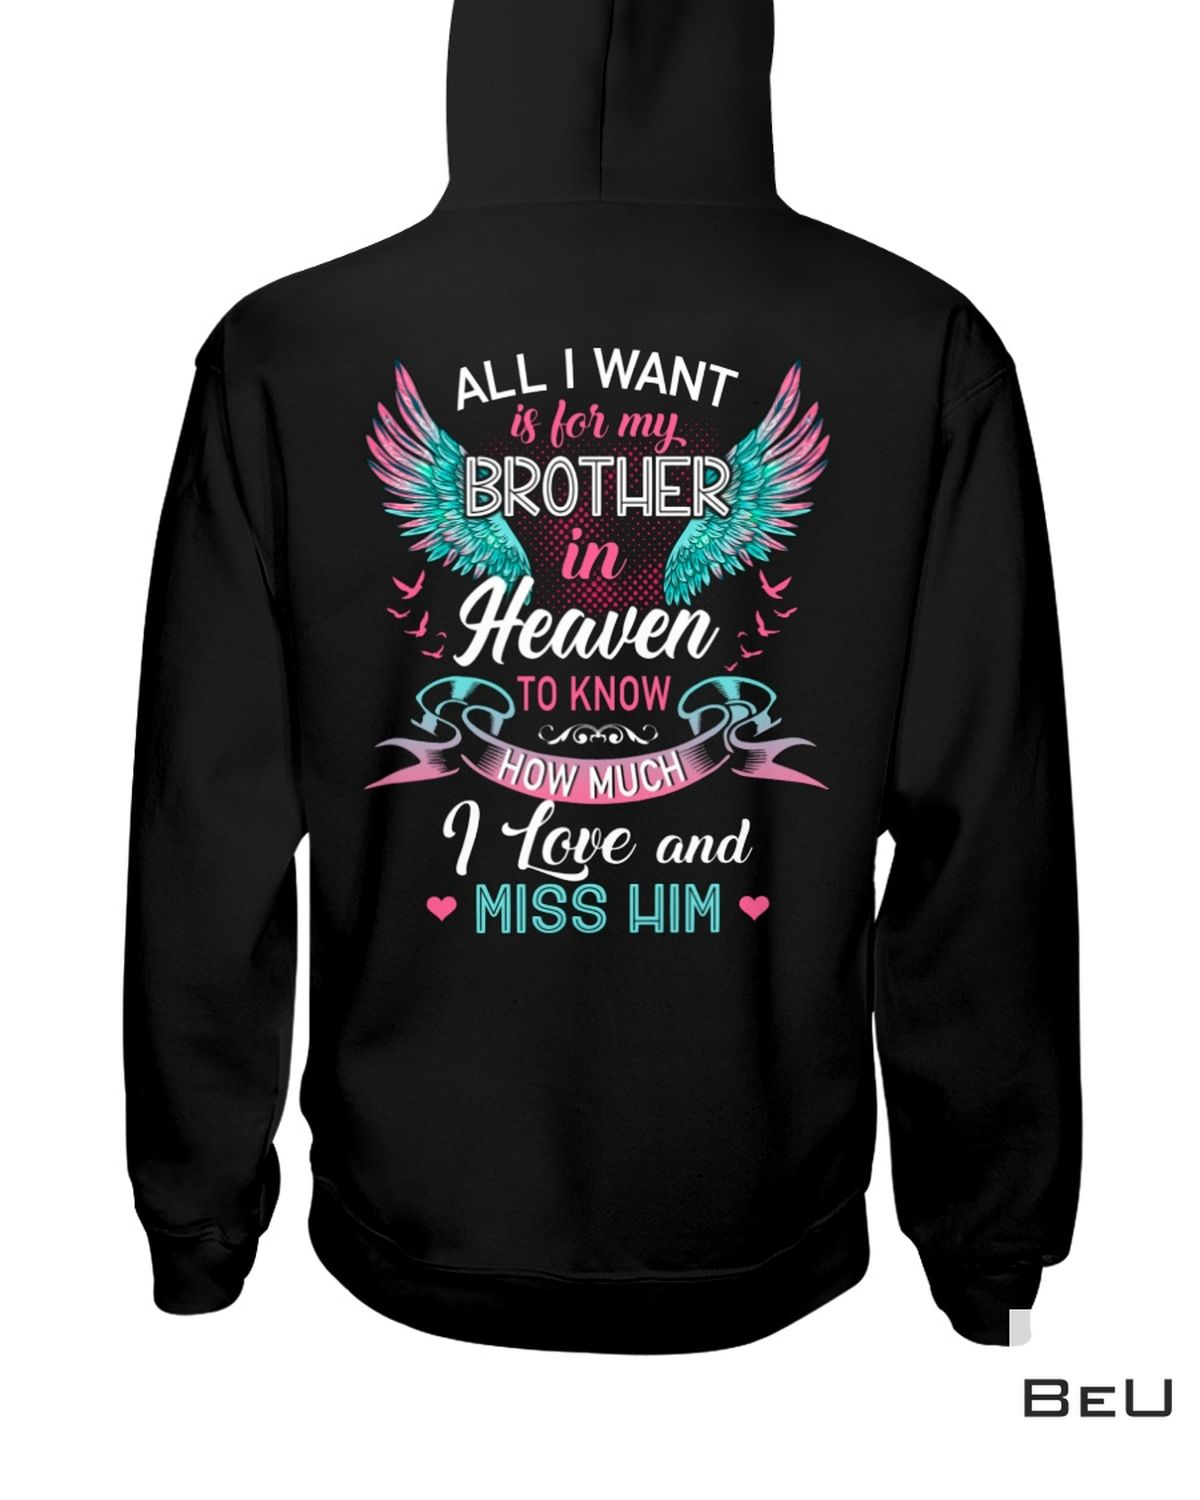 All I Want Is For My Brother In Heaven shirt z